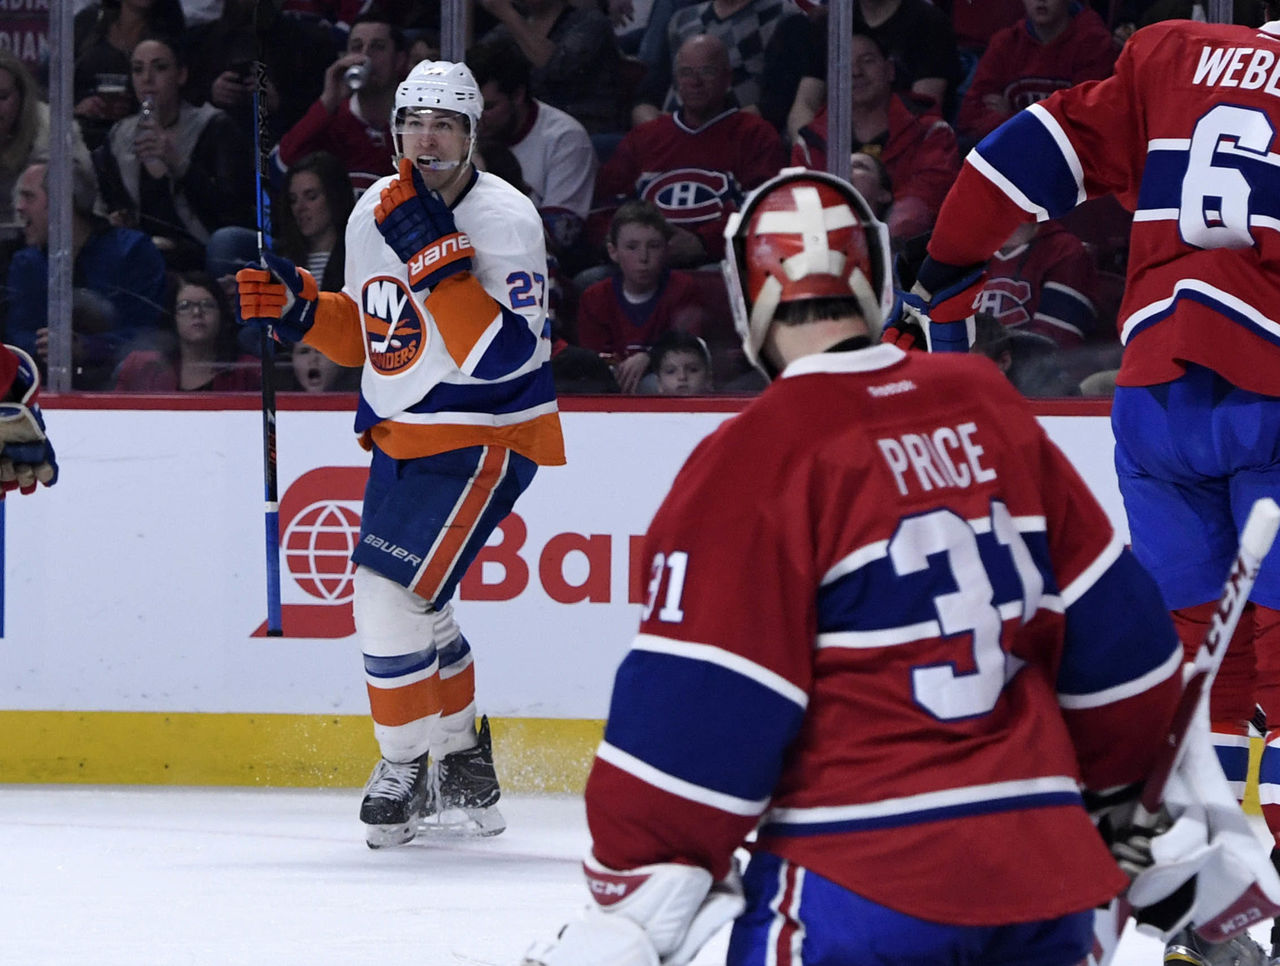 Cropped_2017-02-24t023100z_87895258_nocid_rtrmadp_3_nhl-new-york-islanders-at-montreal-canadiens